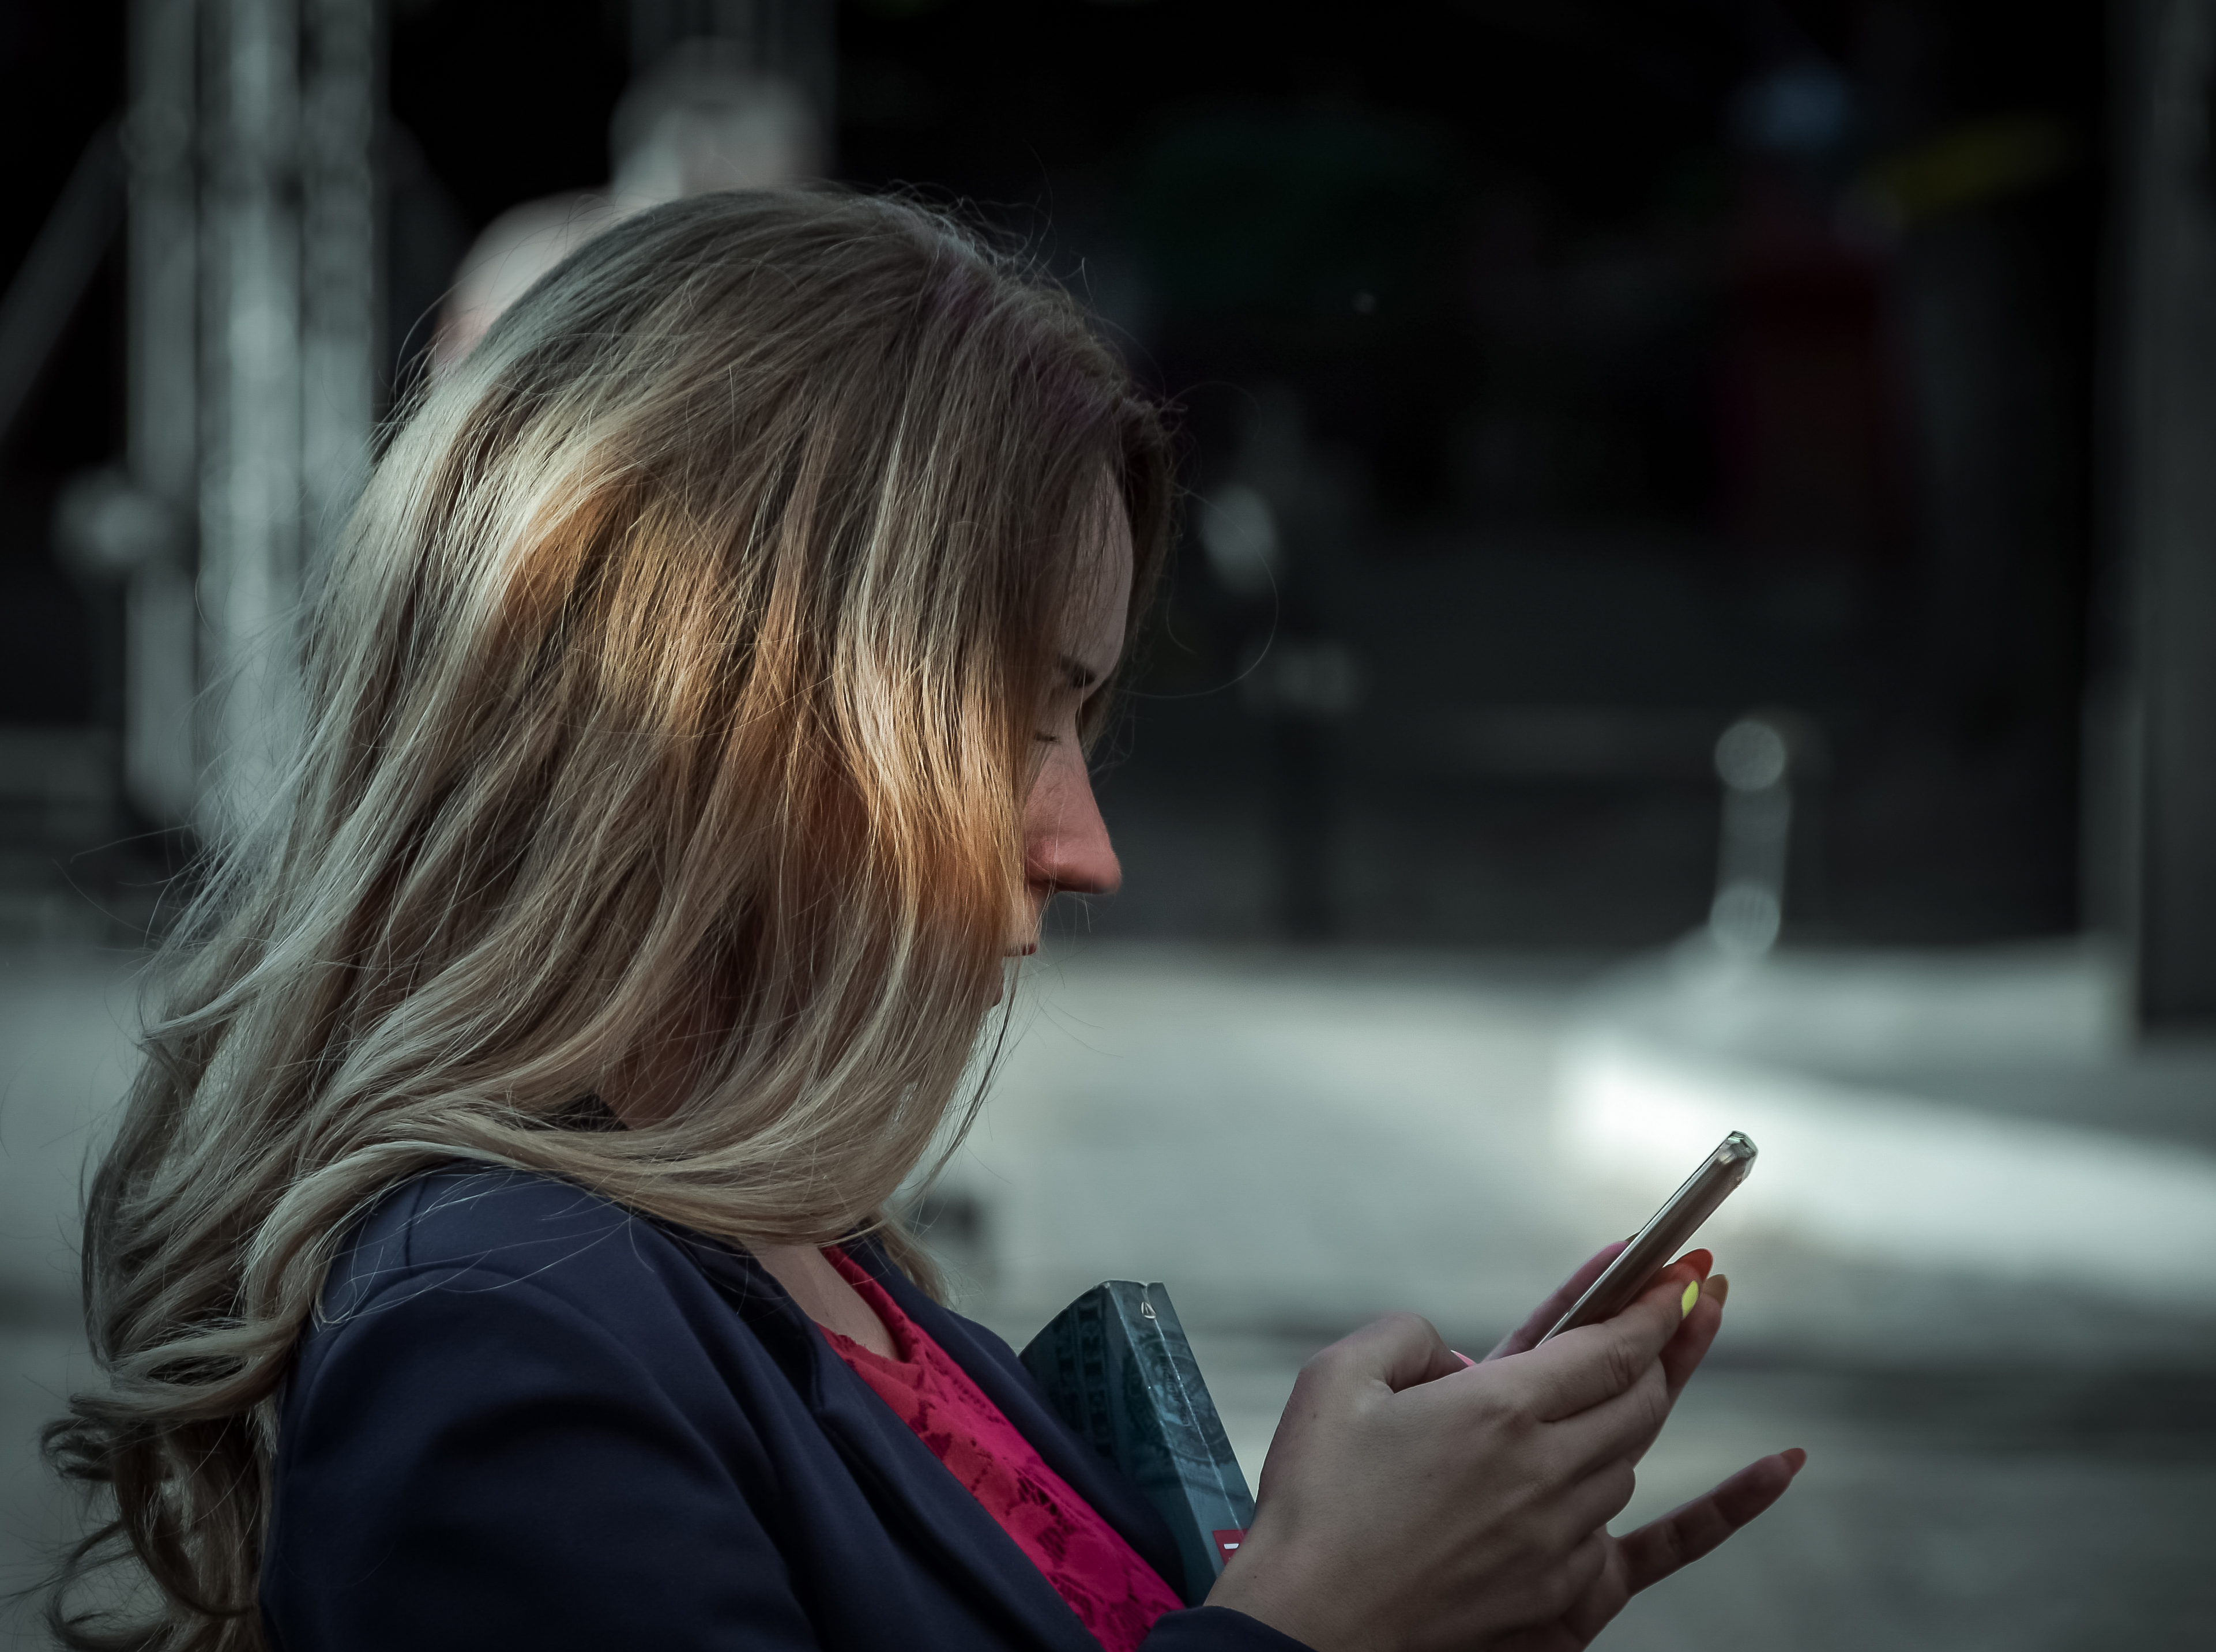 Why 'Dear Jane' Texts are so hurtful and what to do if you get one!